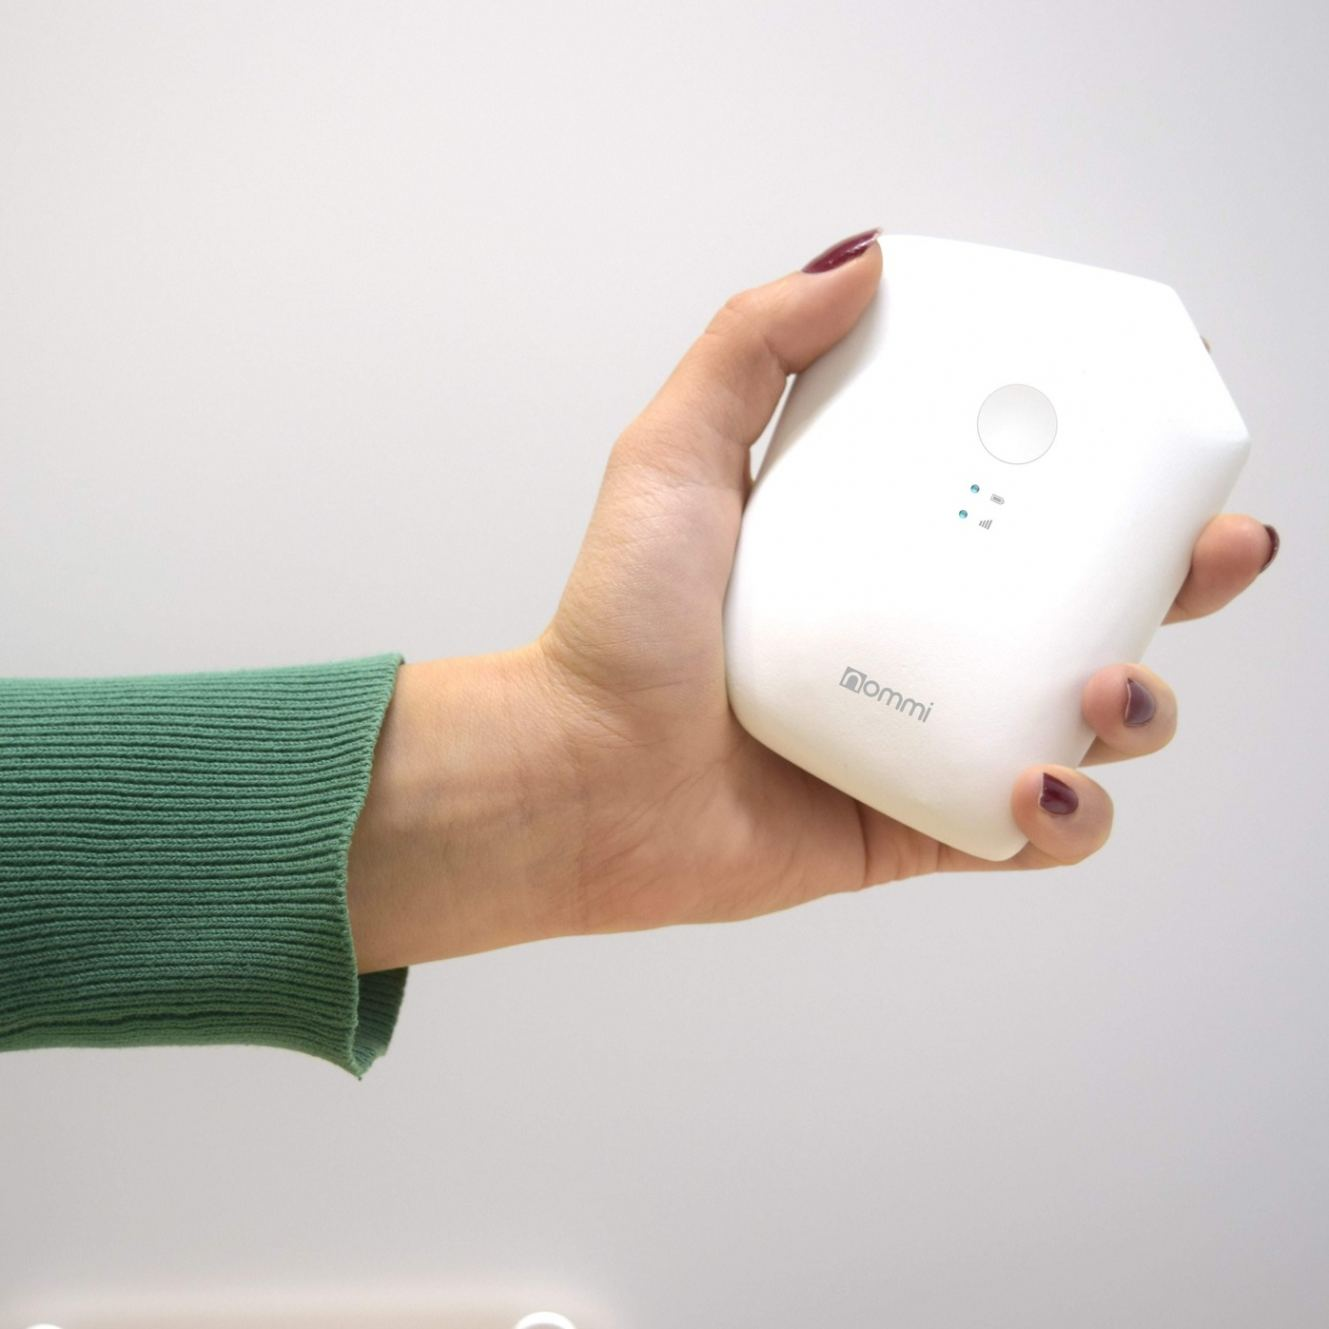 Nommi - 4G Hotspot with Unlimited Wi-Fi Worldwide.